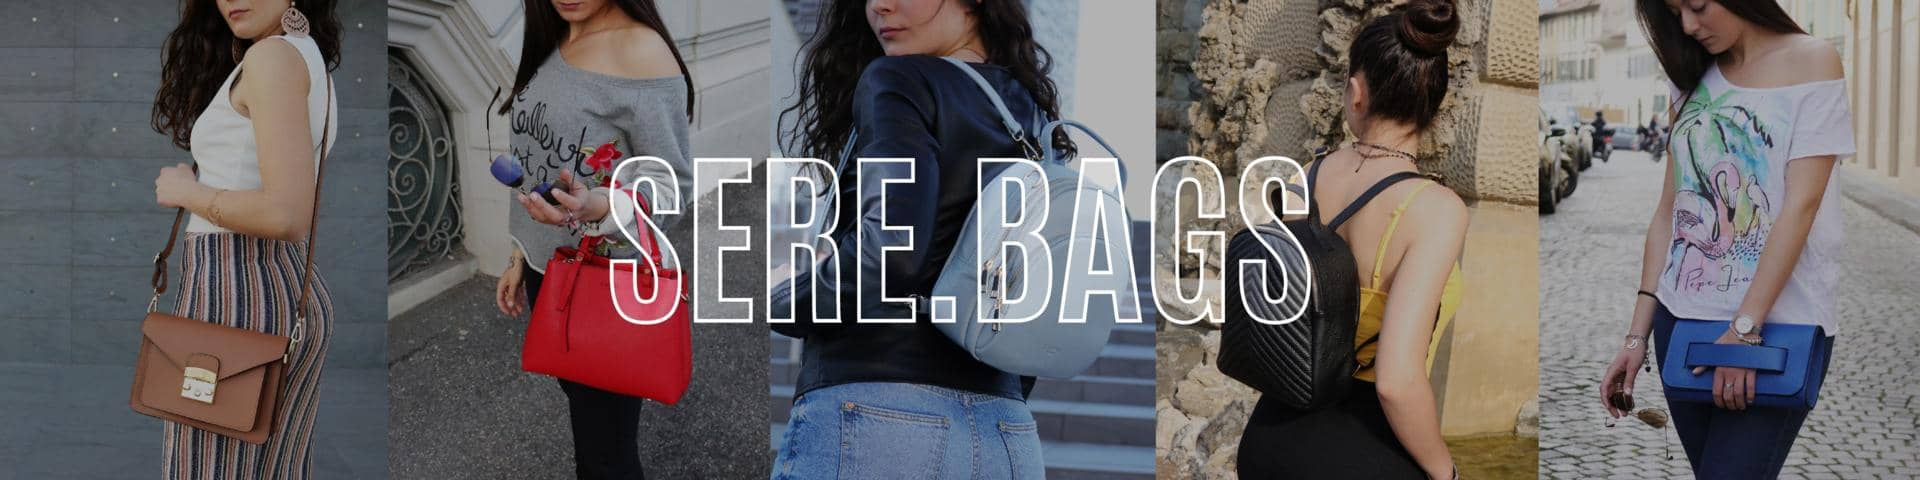 SERE.BAGS SRL - Sere.Bags SRL sells only genuine Made in Italy leather products.